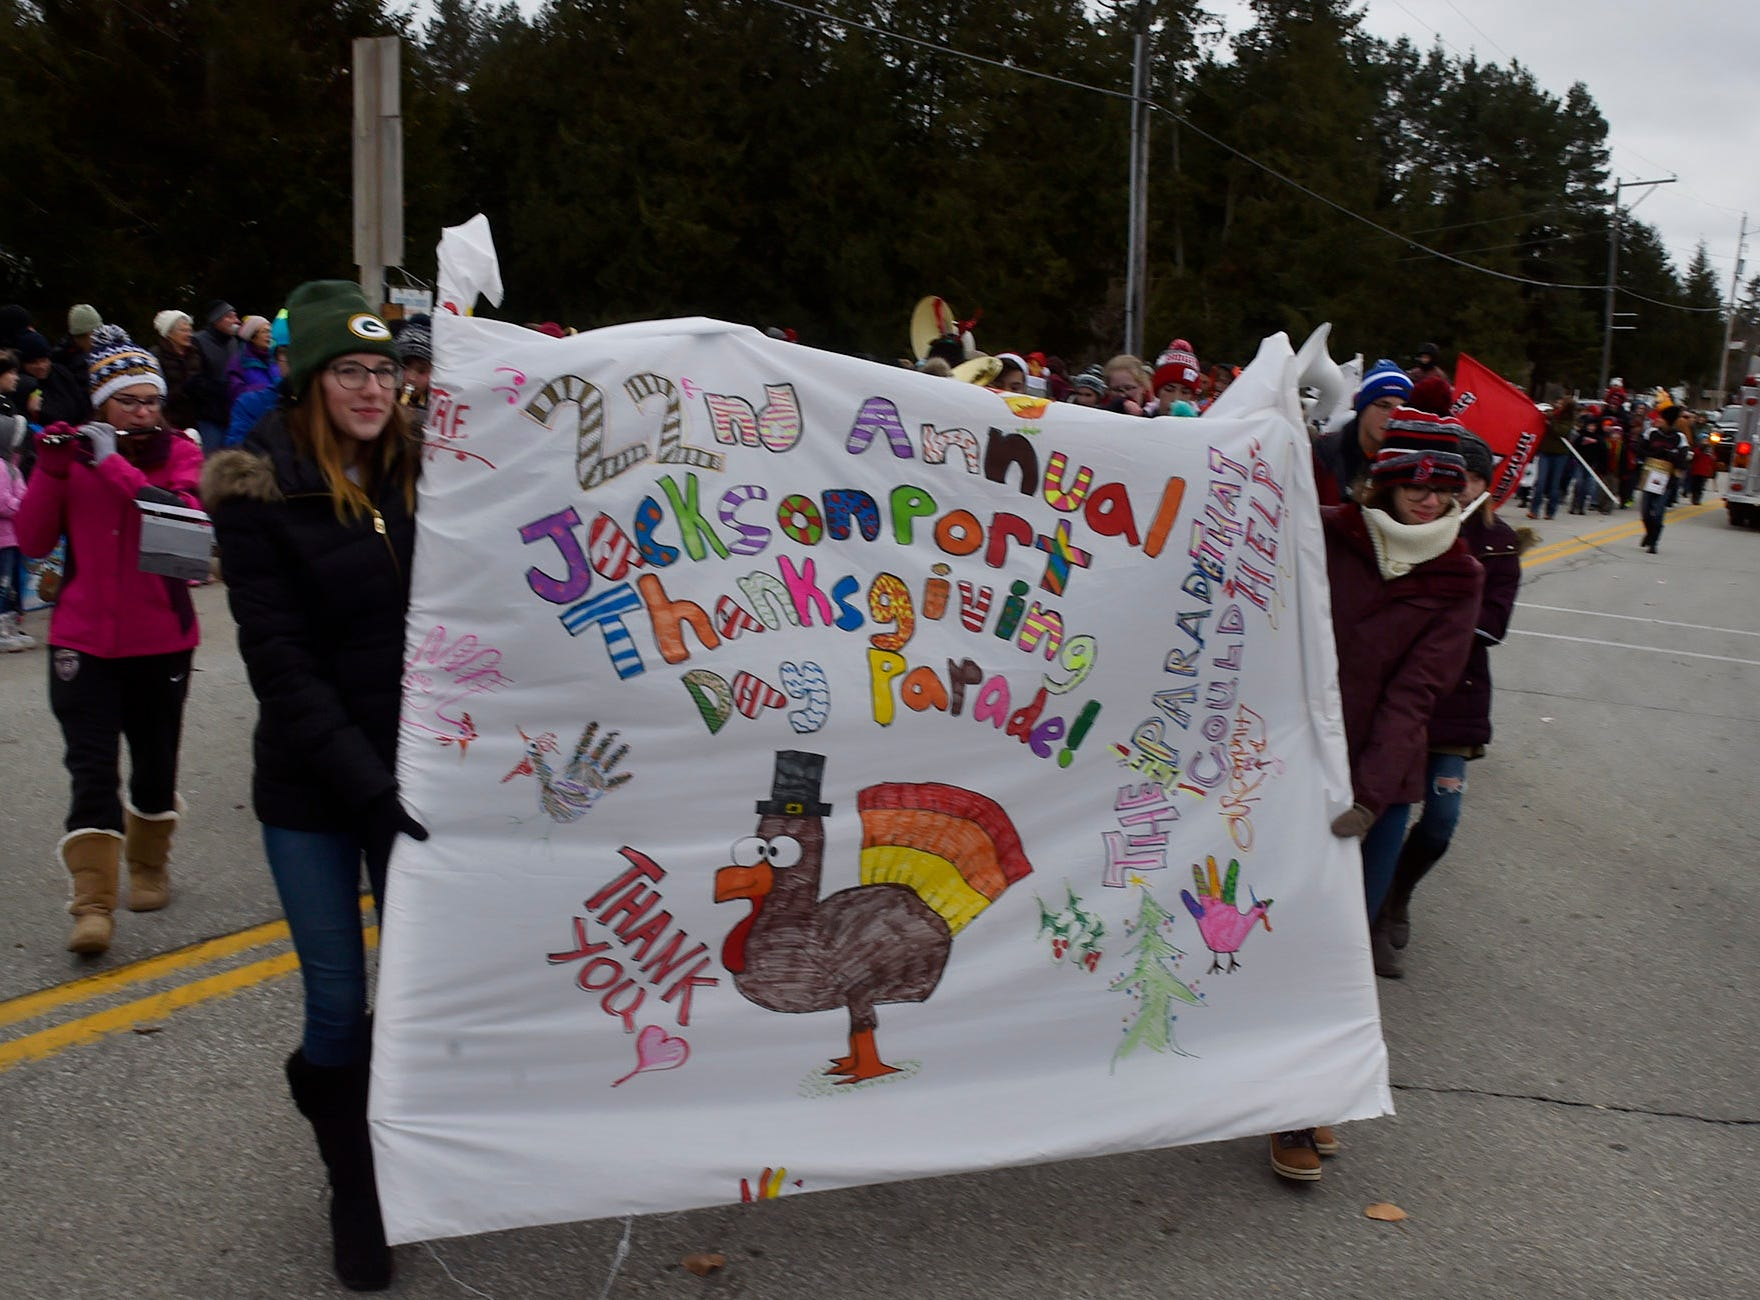 One of its largest parades (entries and audience), the Thanksgiving Day Parade in Jacksonport celebrated its 22nd year on Thursday, Nov. 22, 2018. The parade holds the unique distinction of marching four blocks and doubling-back for a second view, and at times overlapping. Left of the highway's dividing line is the beginning of the parade on its return march passing by the end of the parade at right. About 500 people watched the parade in 25 degree weather. To see more photos of the parade, visit www.doorcountyadvocate.com. Tina M. Gohr/USA TODAY NETWORK-Wisconsin